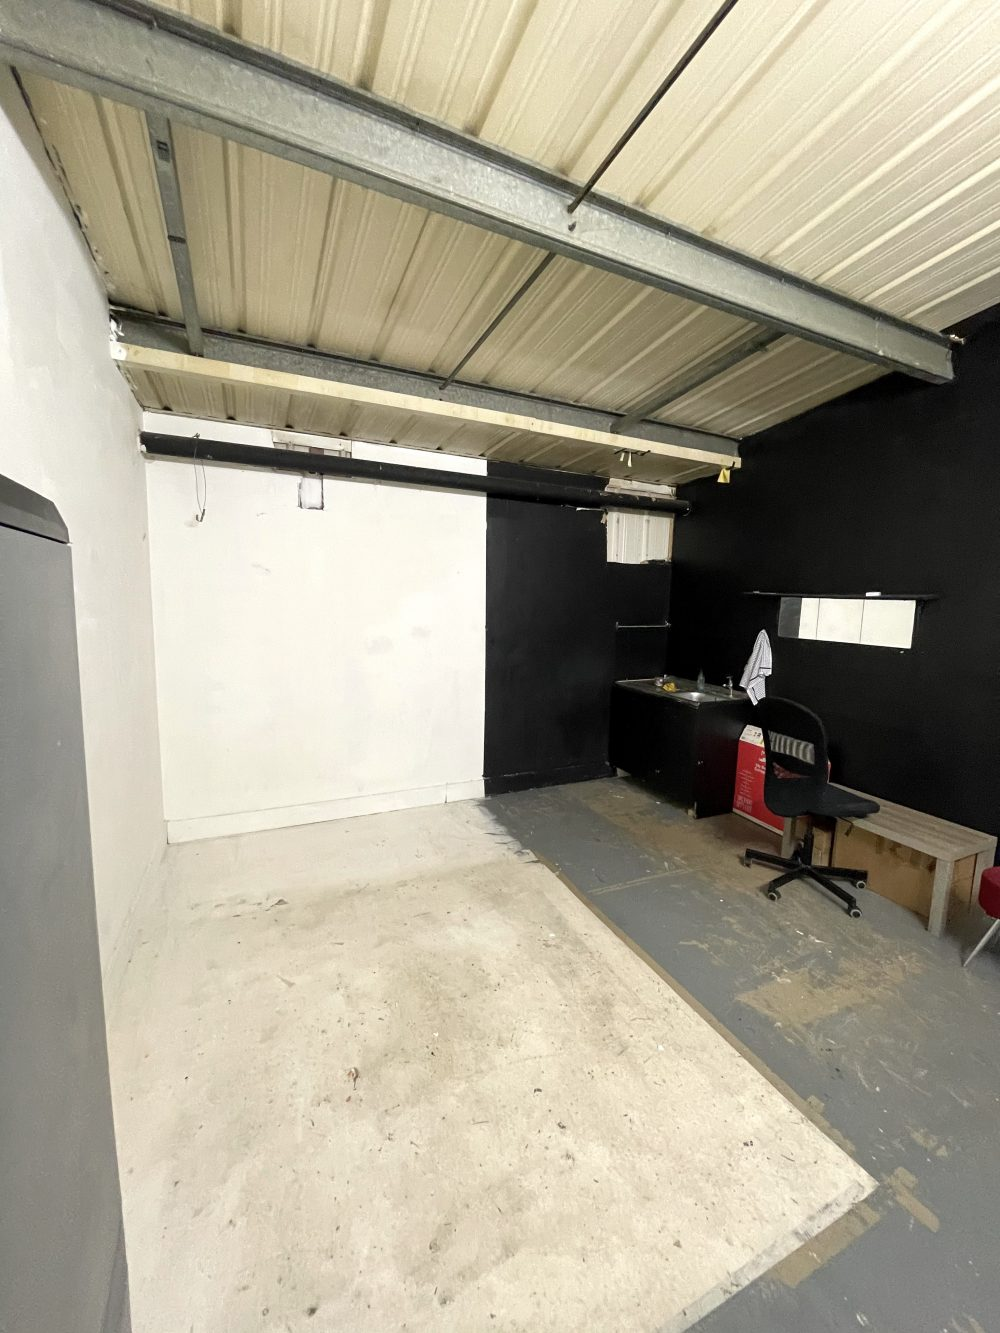 Light indurstrial unit to rent in N16 Stoke Newington Shelford Place PIc6